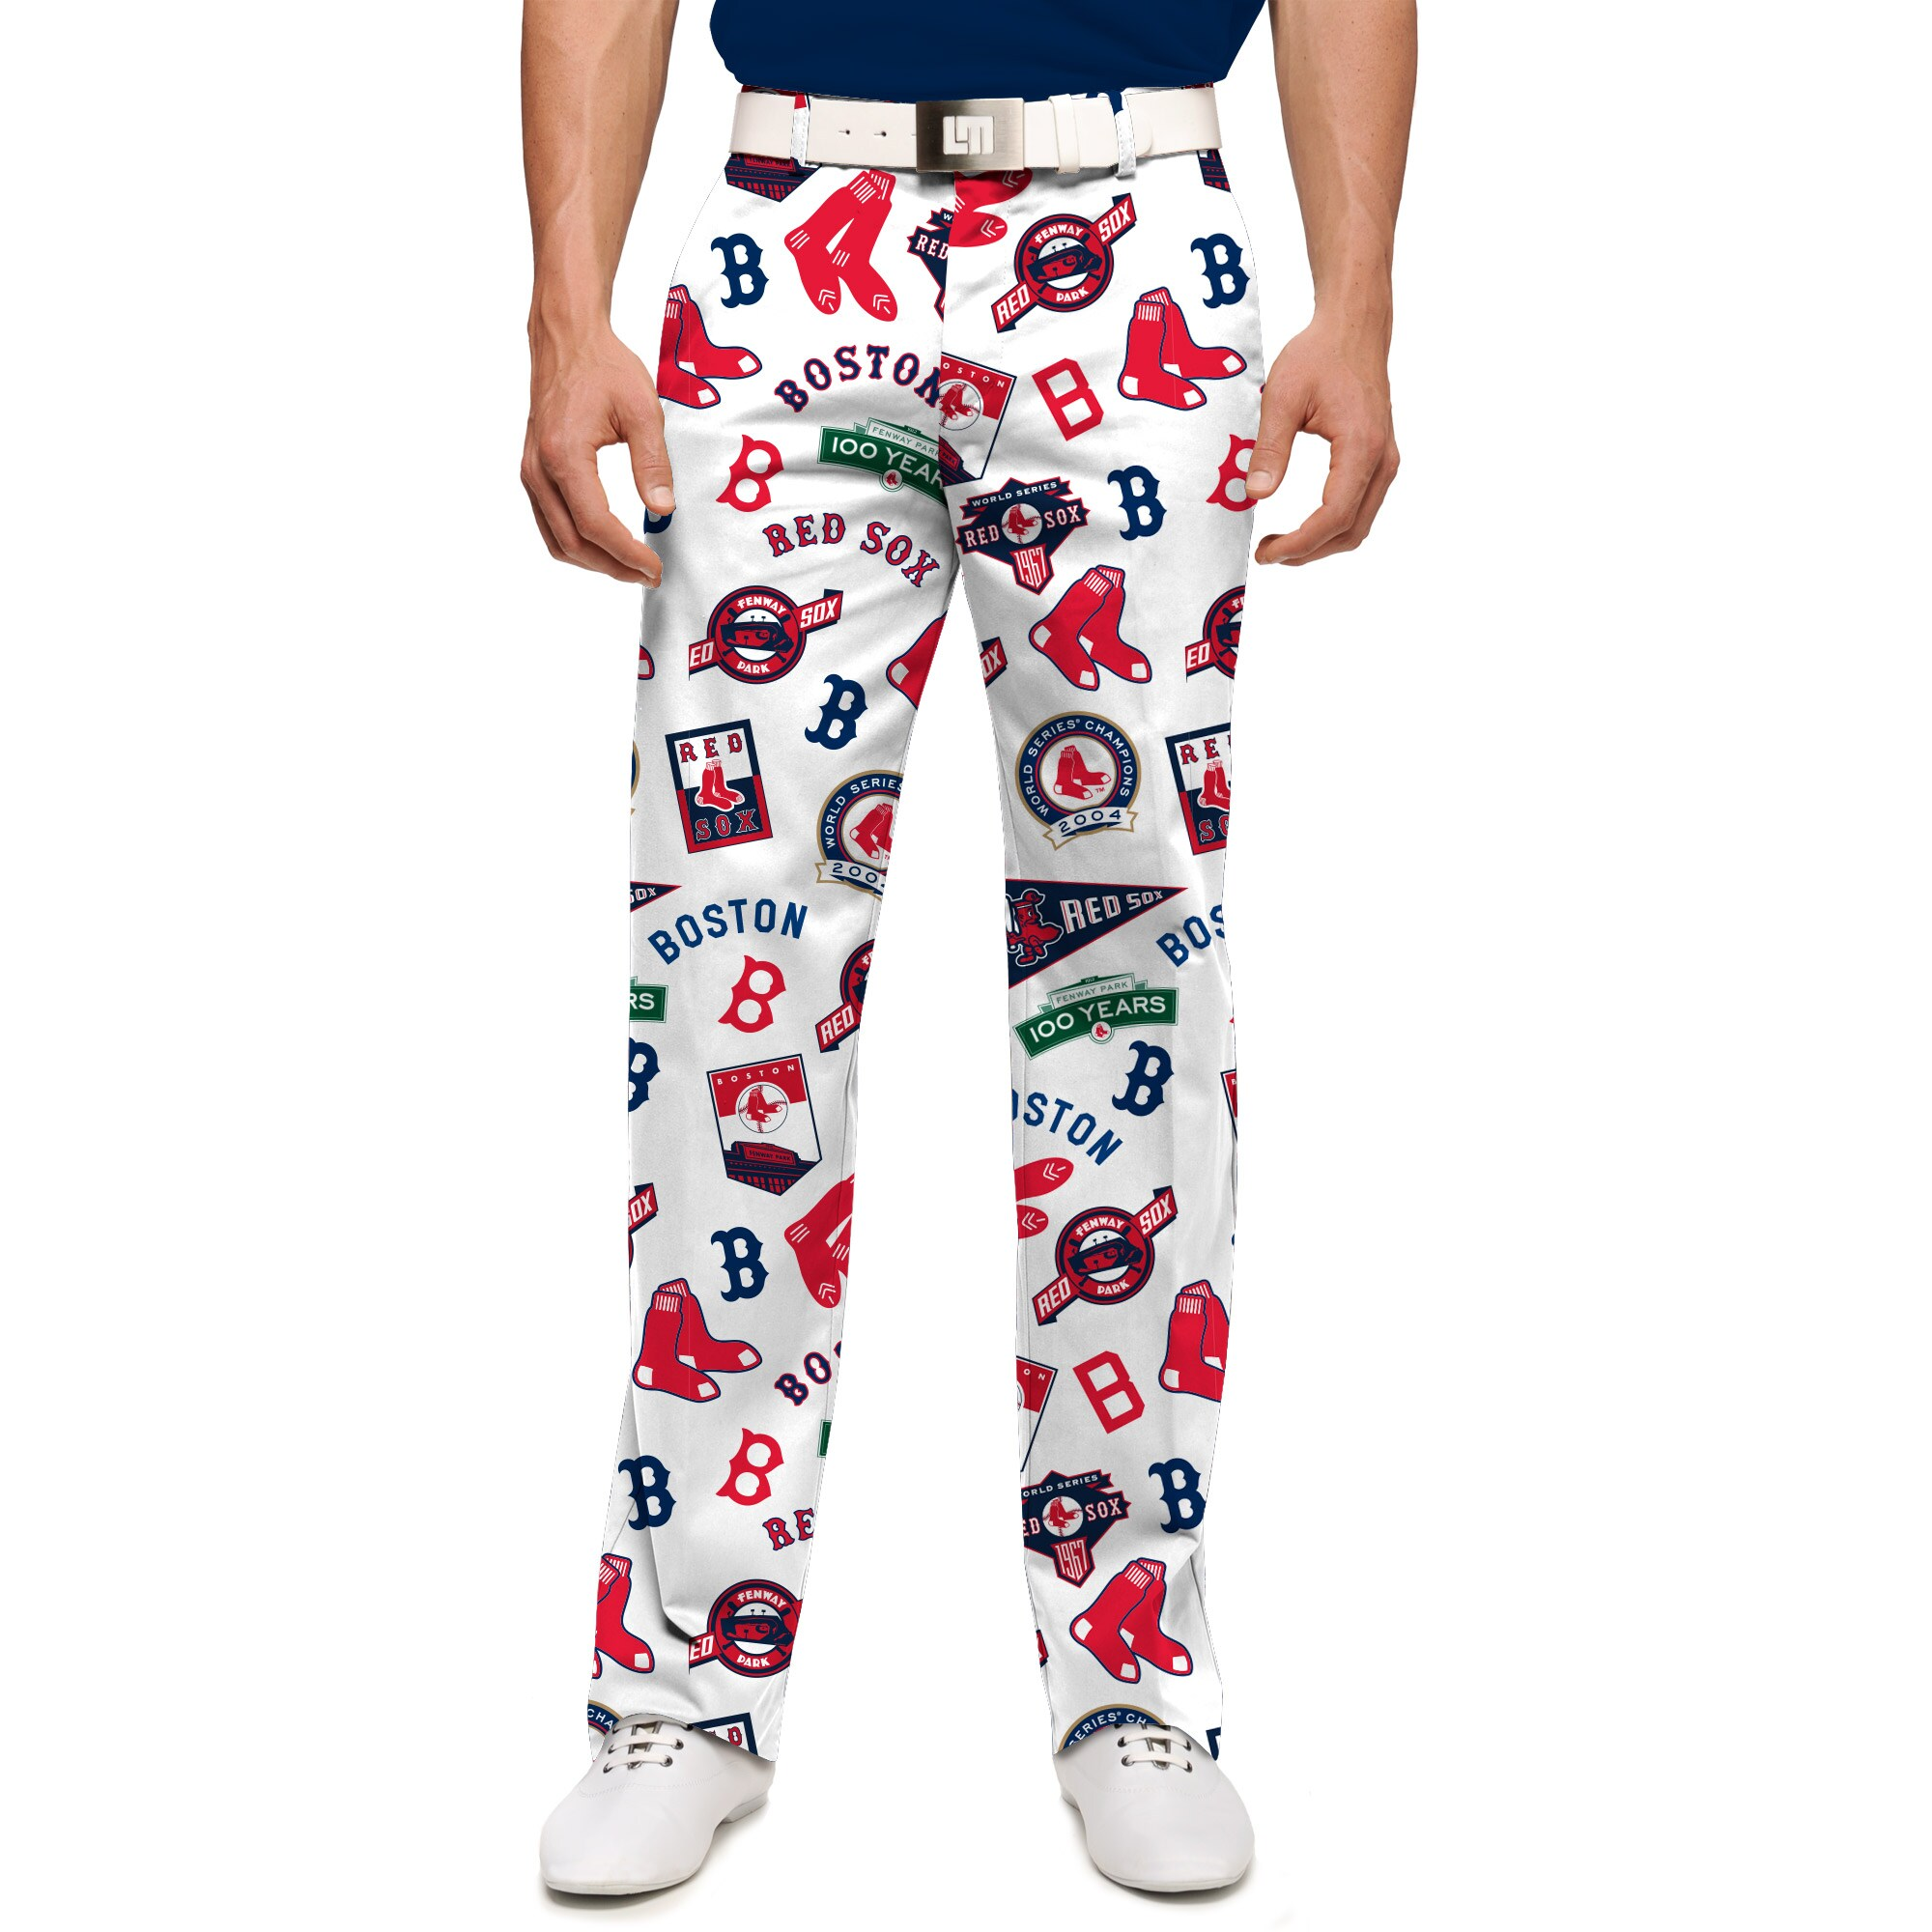 Boston Red Sox Loudmouth Retro StretchTech Pants - White/Red